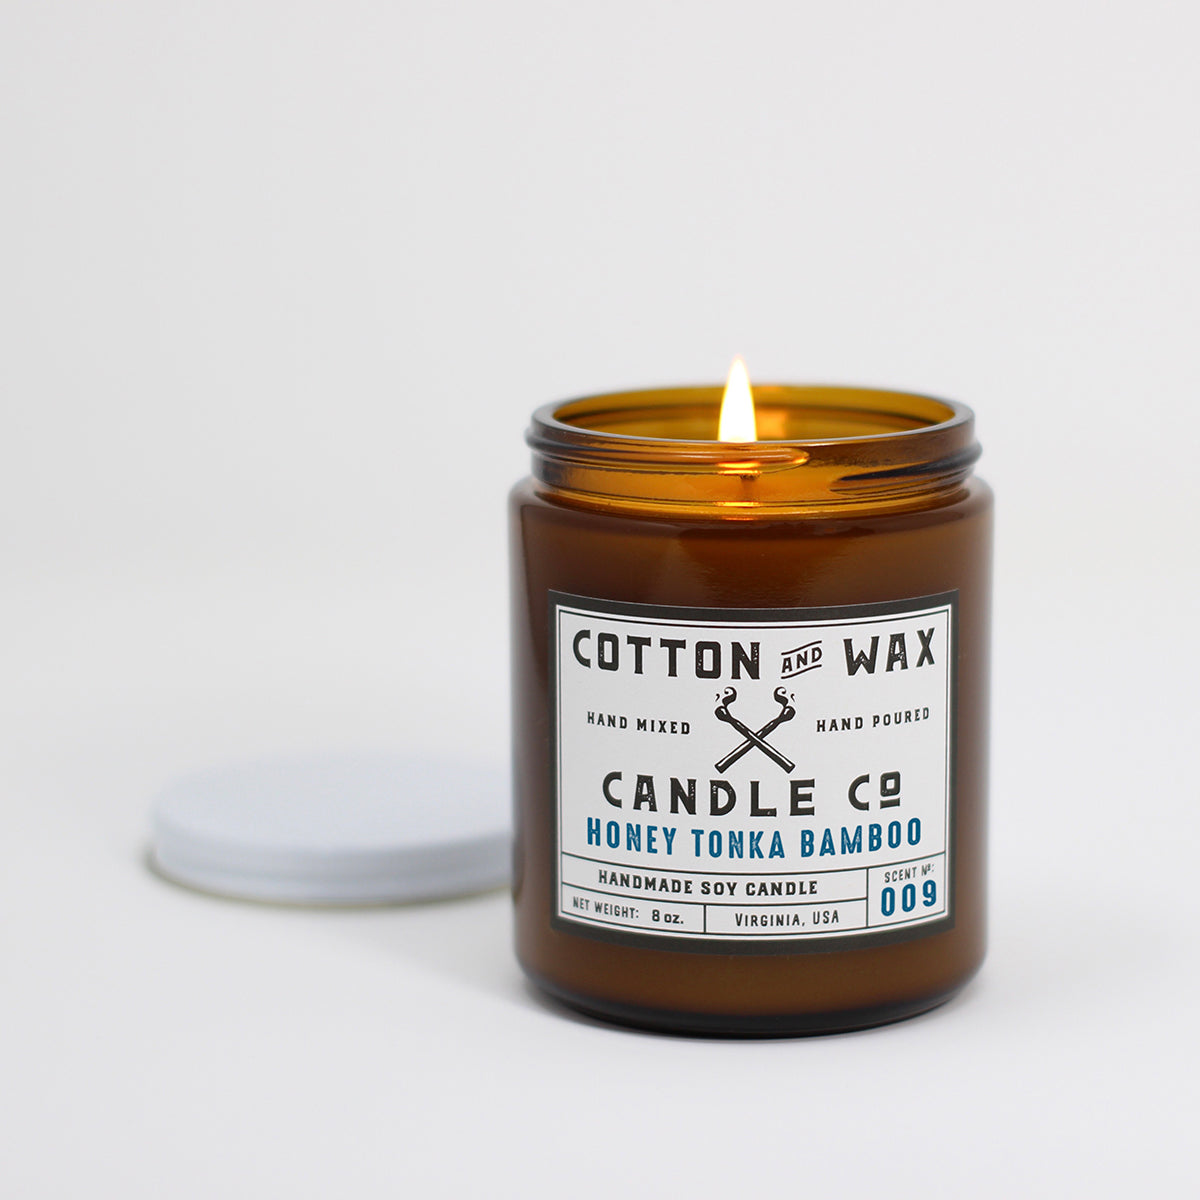 Cotton and Wax Candle Co. No. 009: Honey Tonka Bamboo Handmade Scented Soy Candle